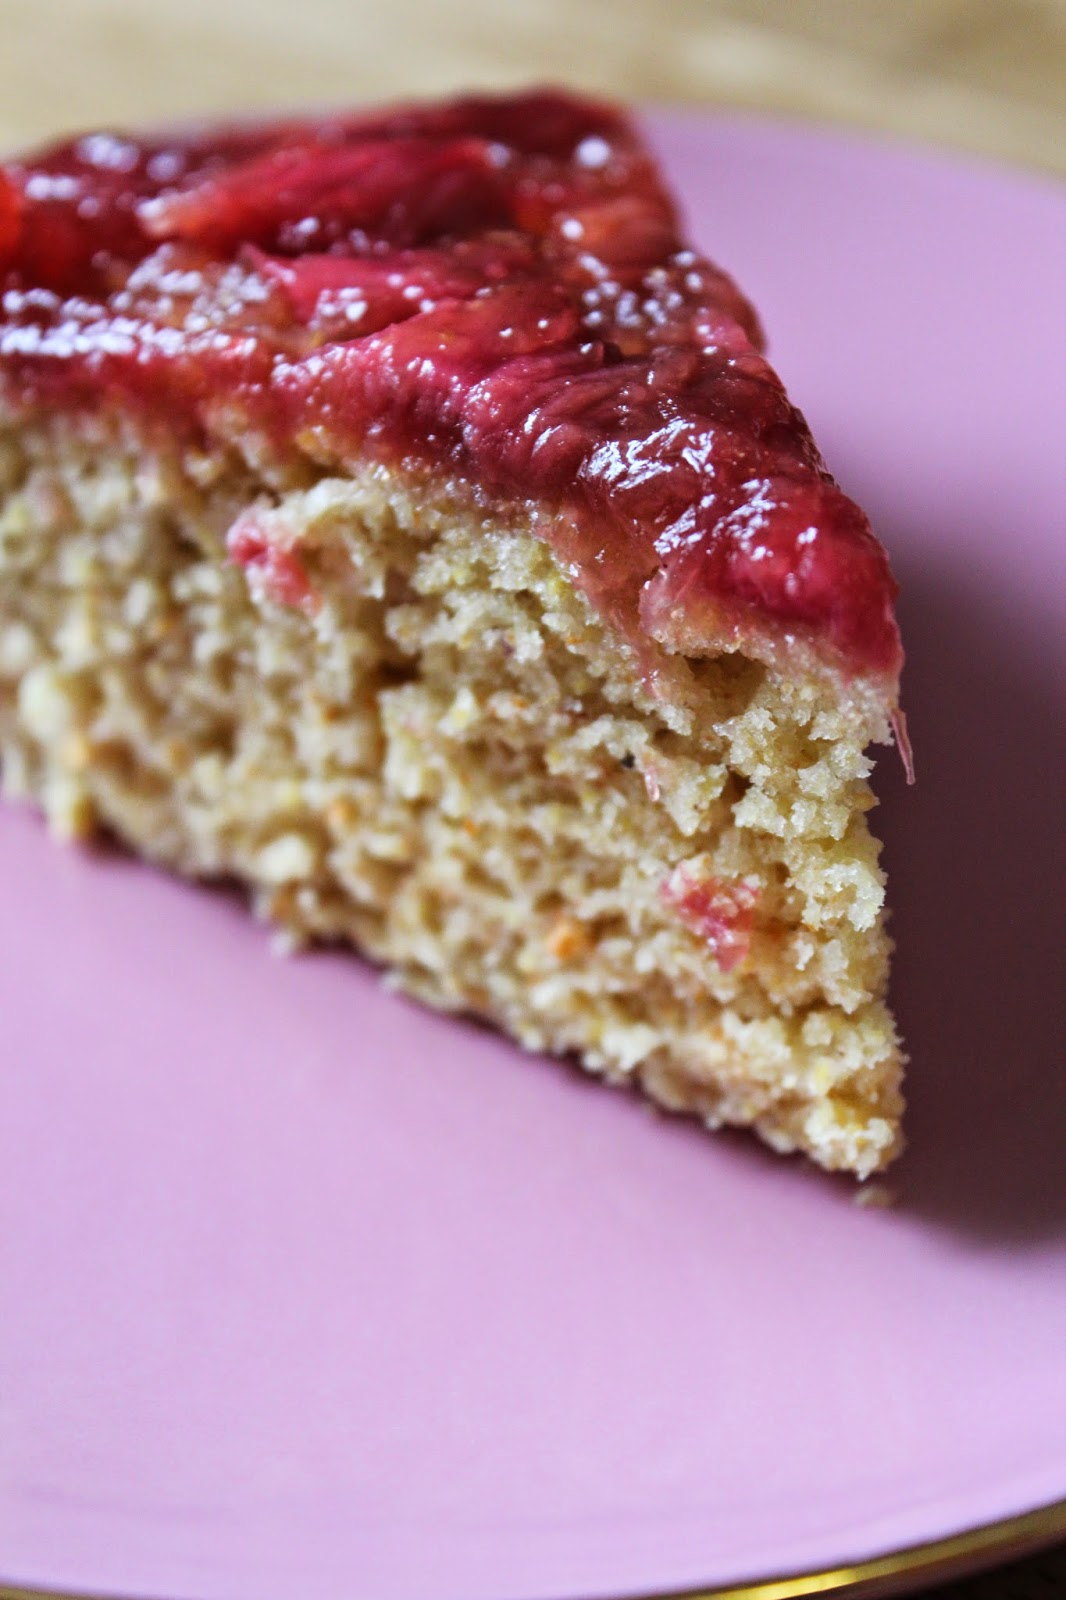 Wake and Bake this Easter: Rhubarb Upside Down Cornbread